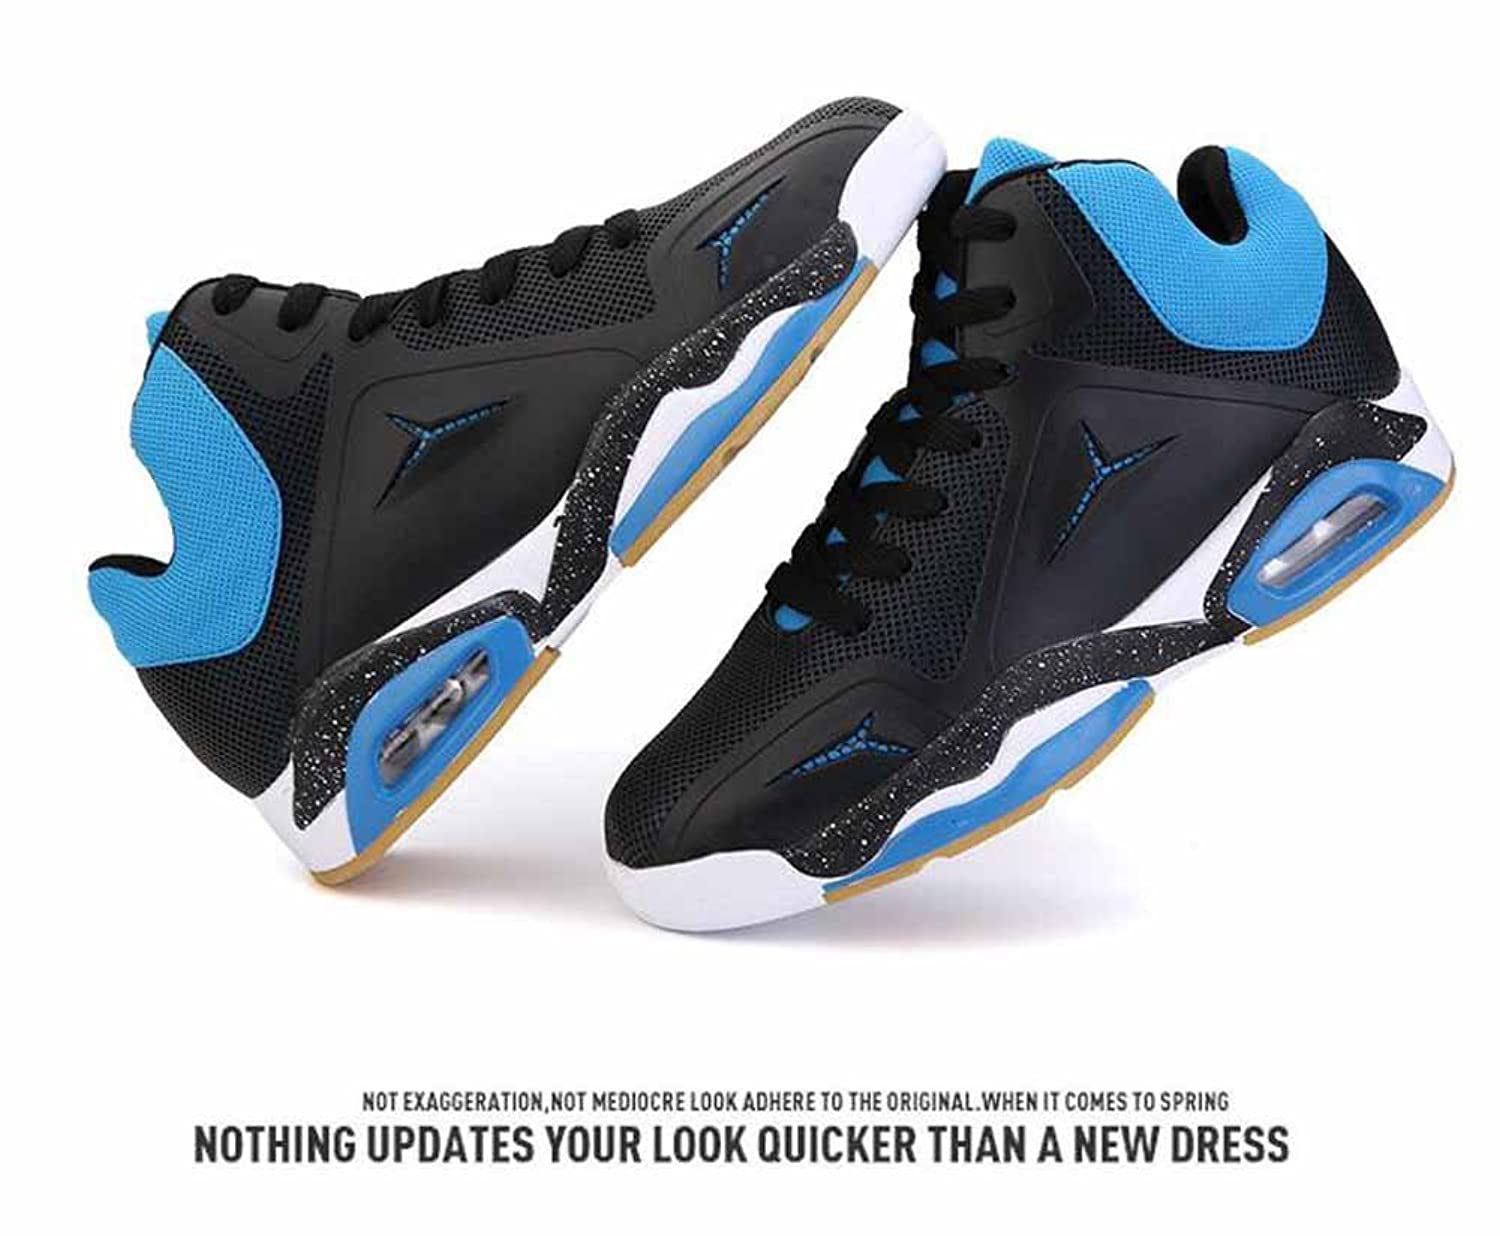 Men Breathable Basketball Shoes 2017 Autumn New Shock Fashion Youth Outdoor  Sports Shoes: Amazon.co.uk: Shoes & Bags